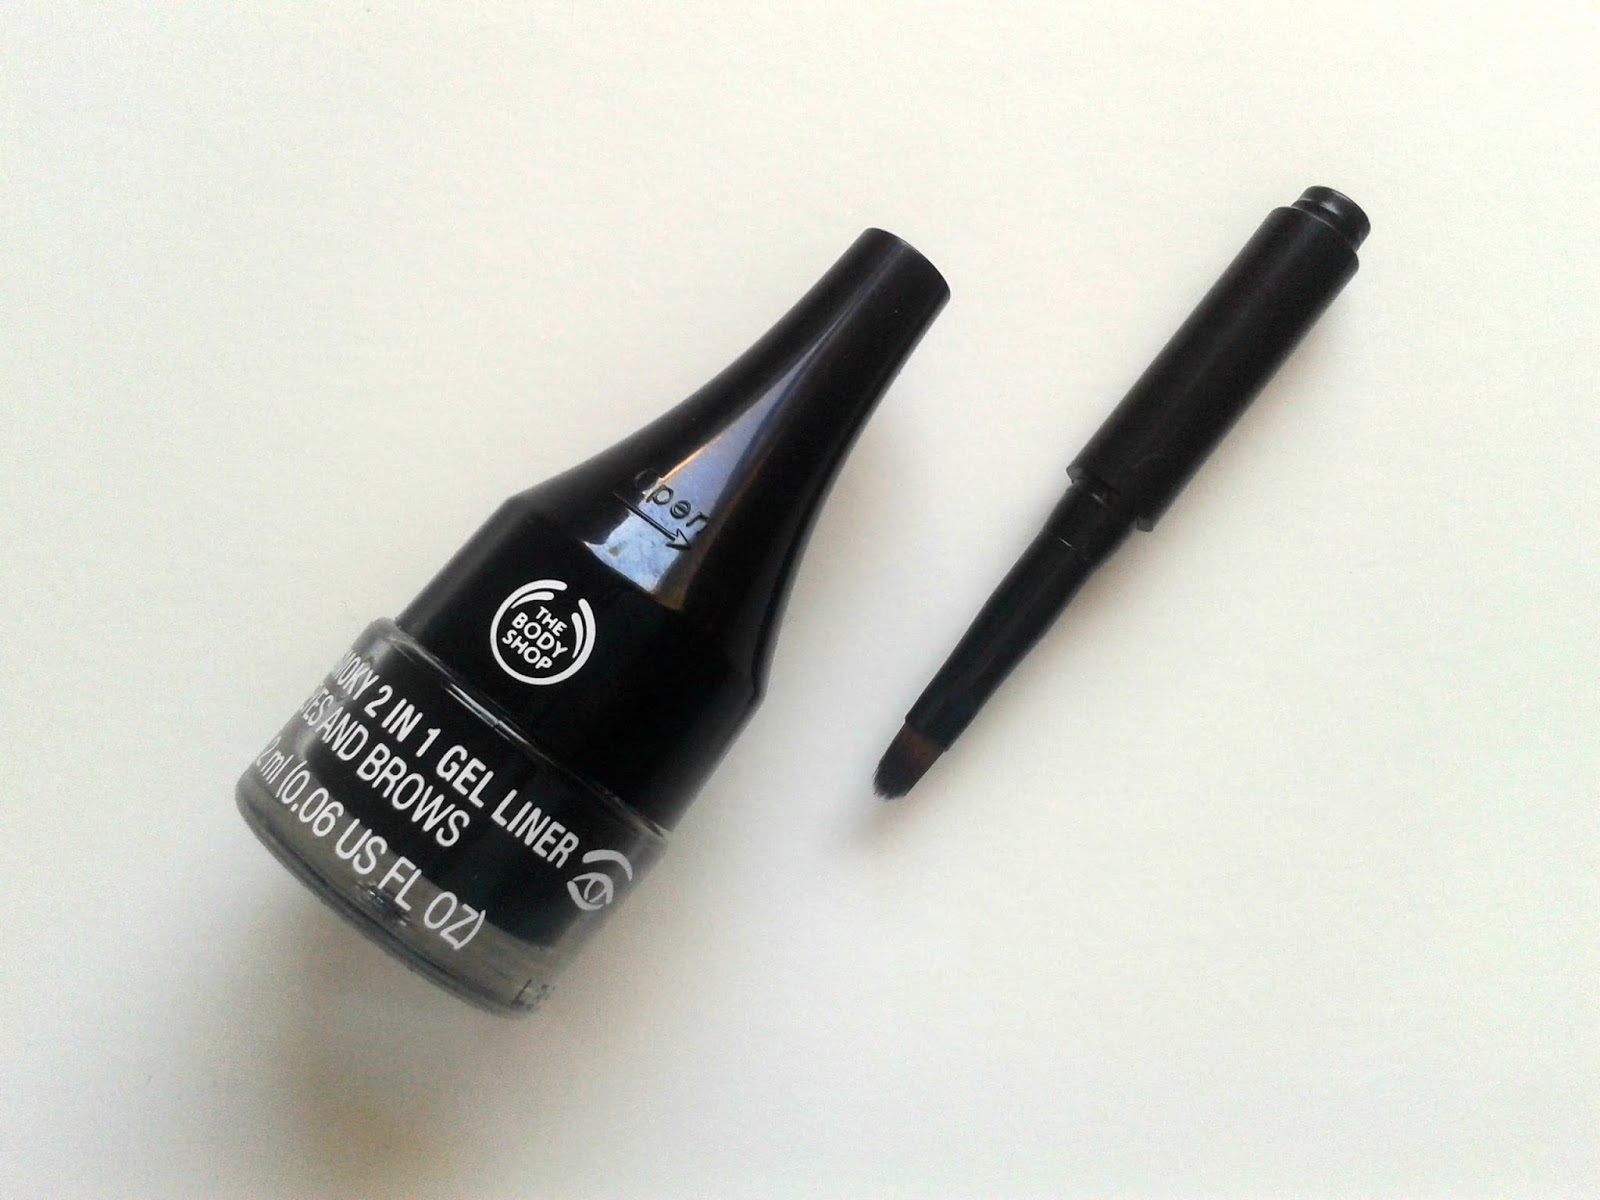 The Body Shop Smoky 2 in 1 Gel Liner Eyes And Brows Black Brush Beauty Review